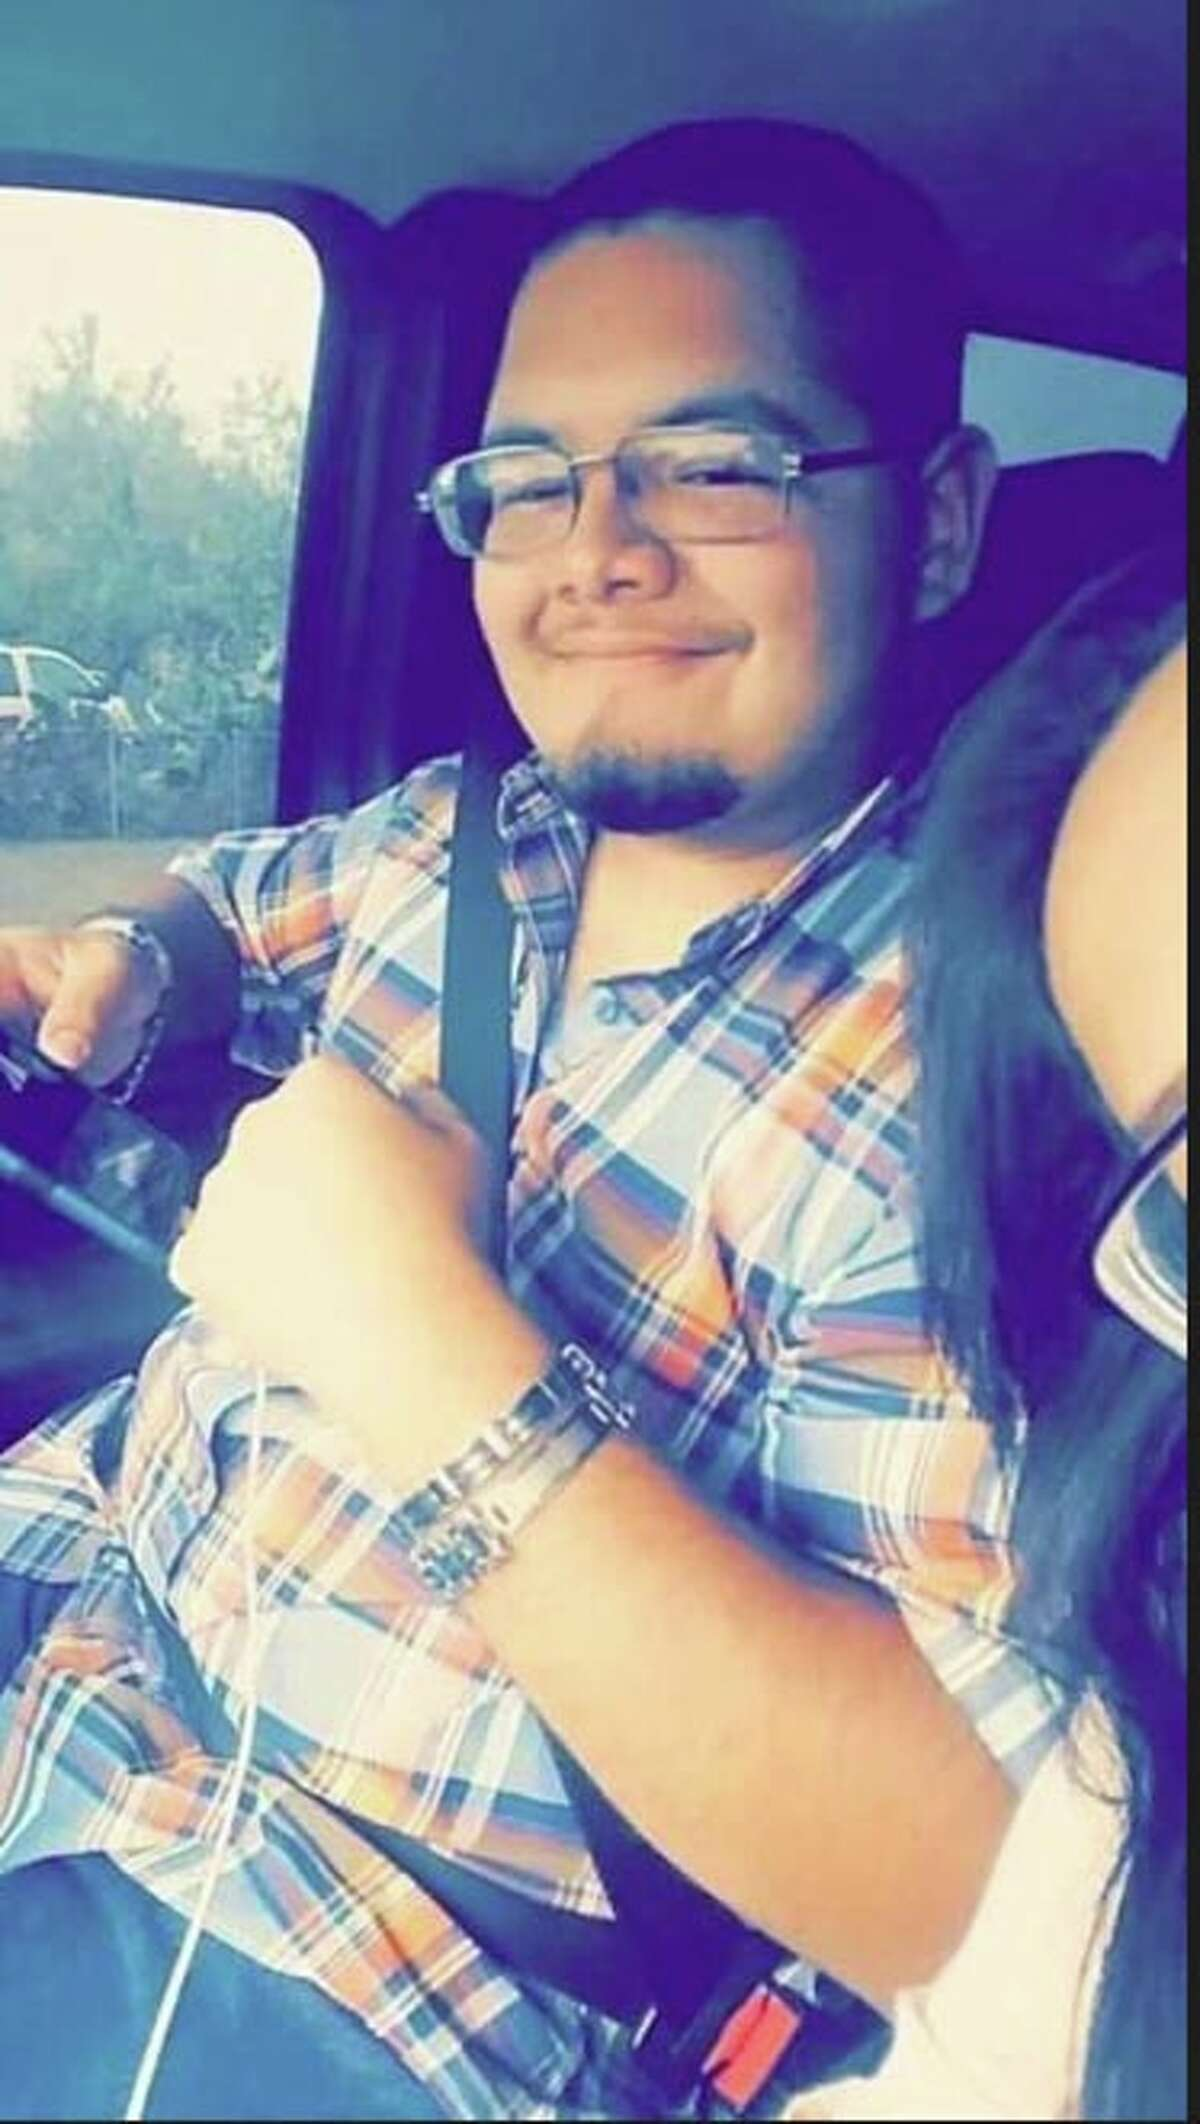 David Angel Alejandres, 19, was killed June 10 after being fatally struck while pushing a vehicle that had broken down on Mines Road, according to records.